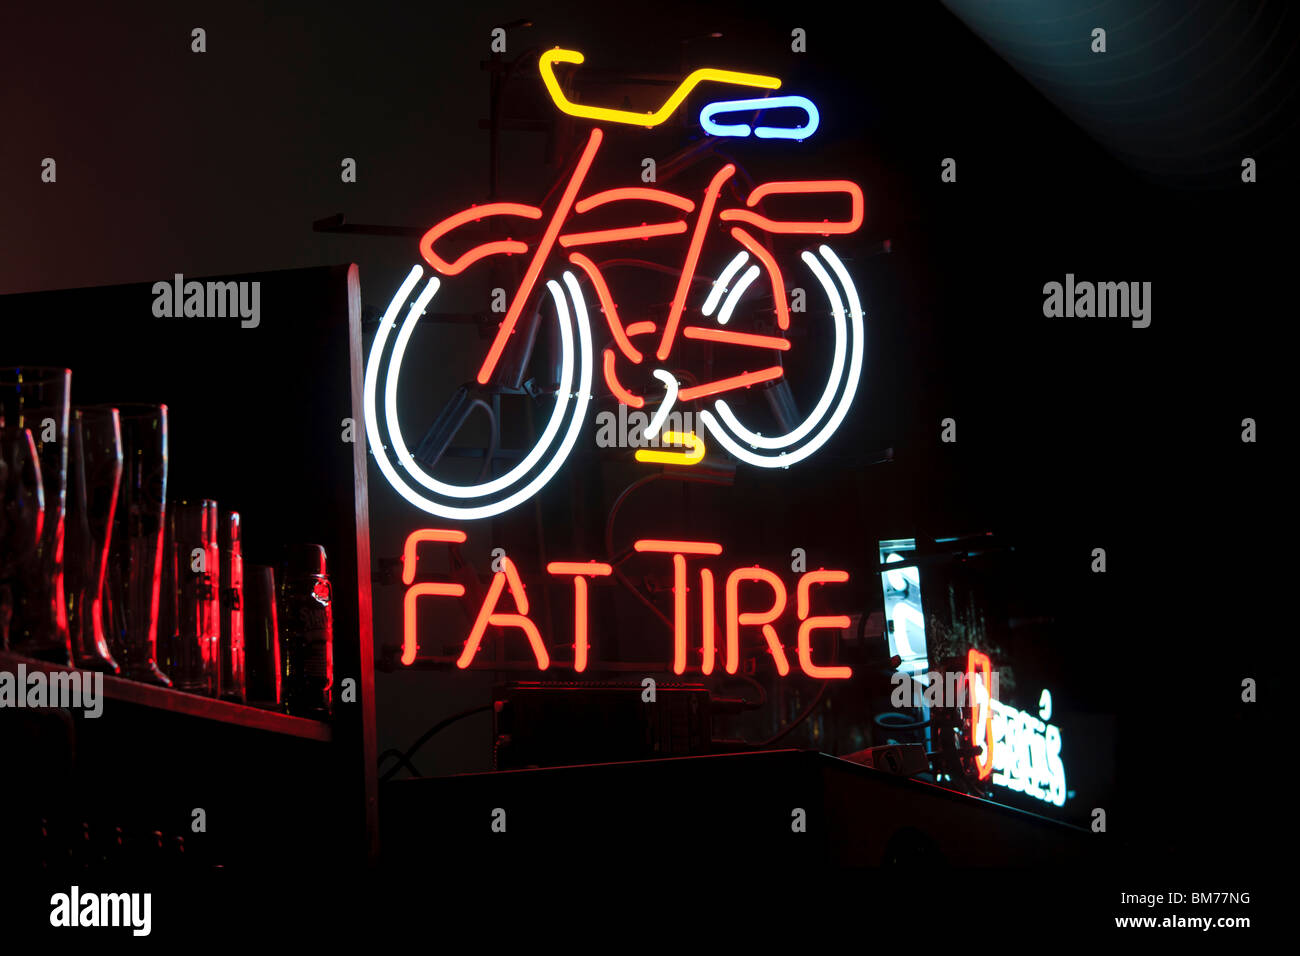 Fat Tire neon sign in a Denver bar. Fat Tire is an amber ale by the New Belgium Brewing Company from Fort Collins, - Stock Image